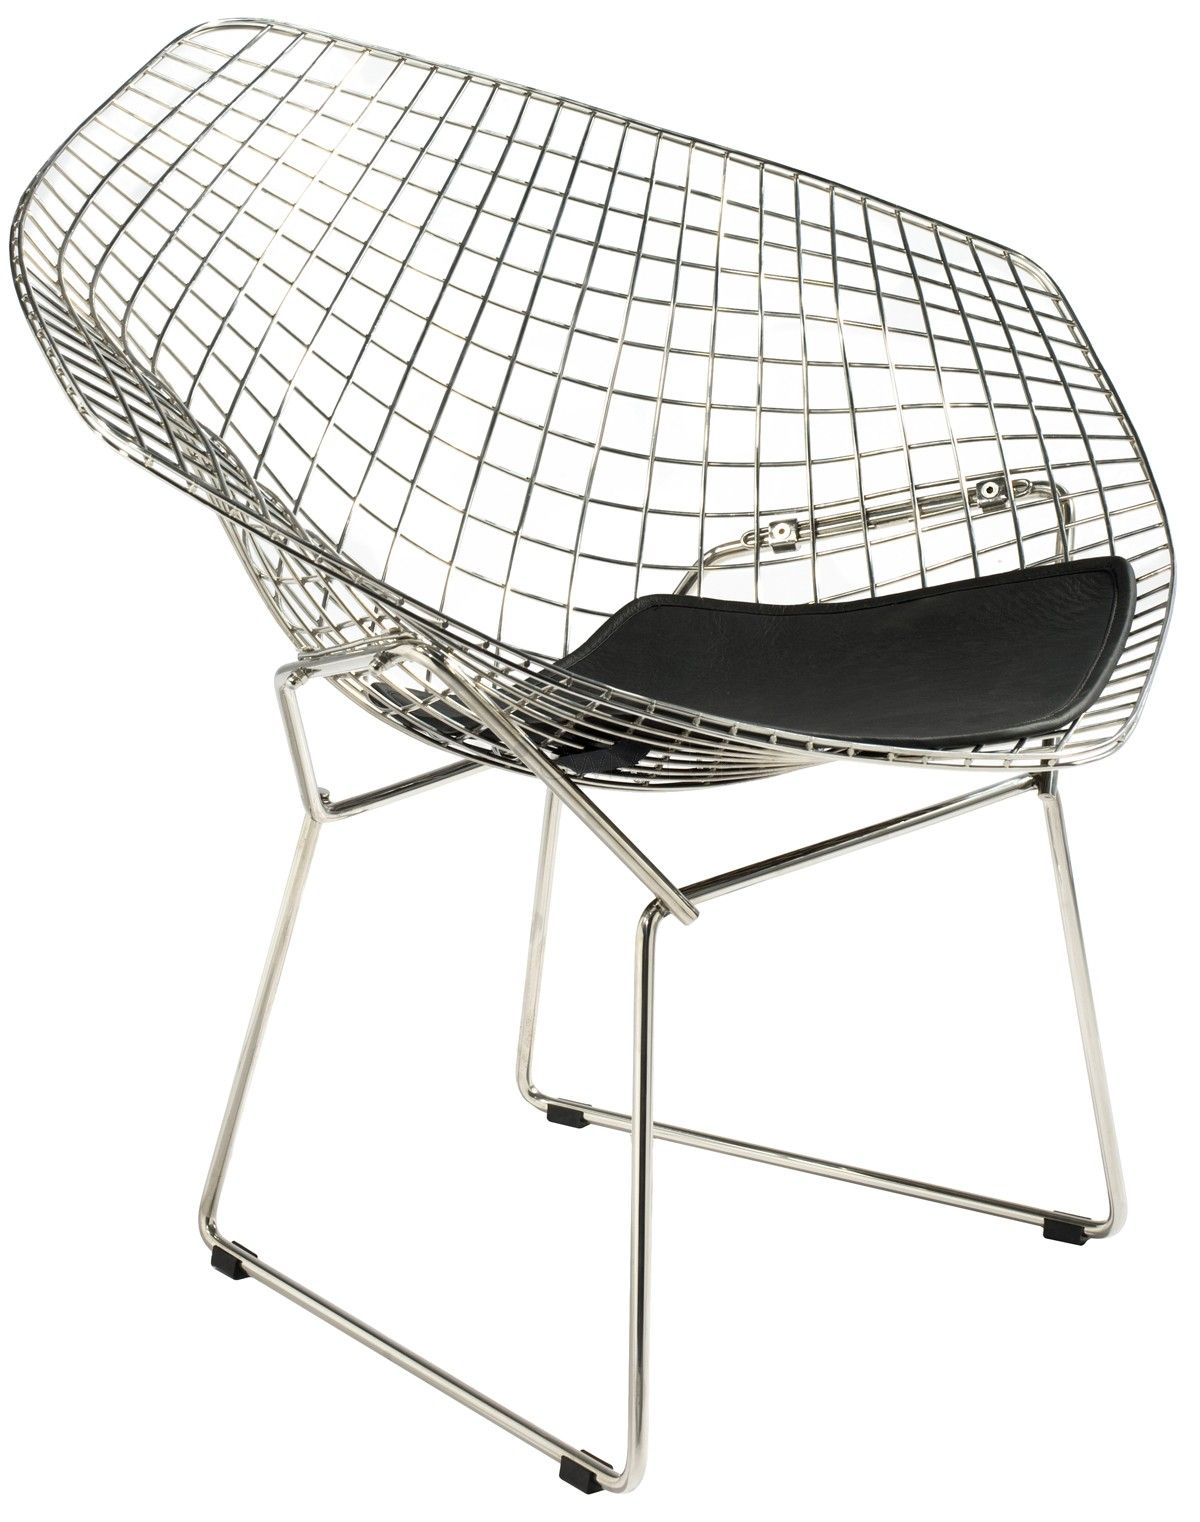 Bertoia diamond chair dimensions - Distinctive Design From 1952 Sculptural Wire Rod Frame Black Italian Leather Seat Can Be Used Outside Innovative And Elegant The Bertoia Diamond Chair Is A